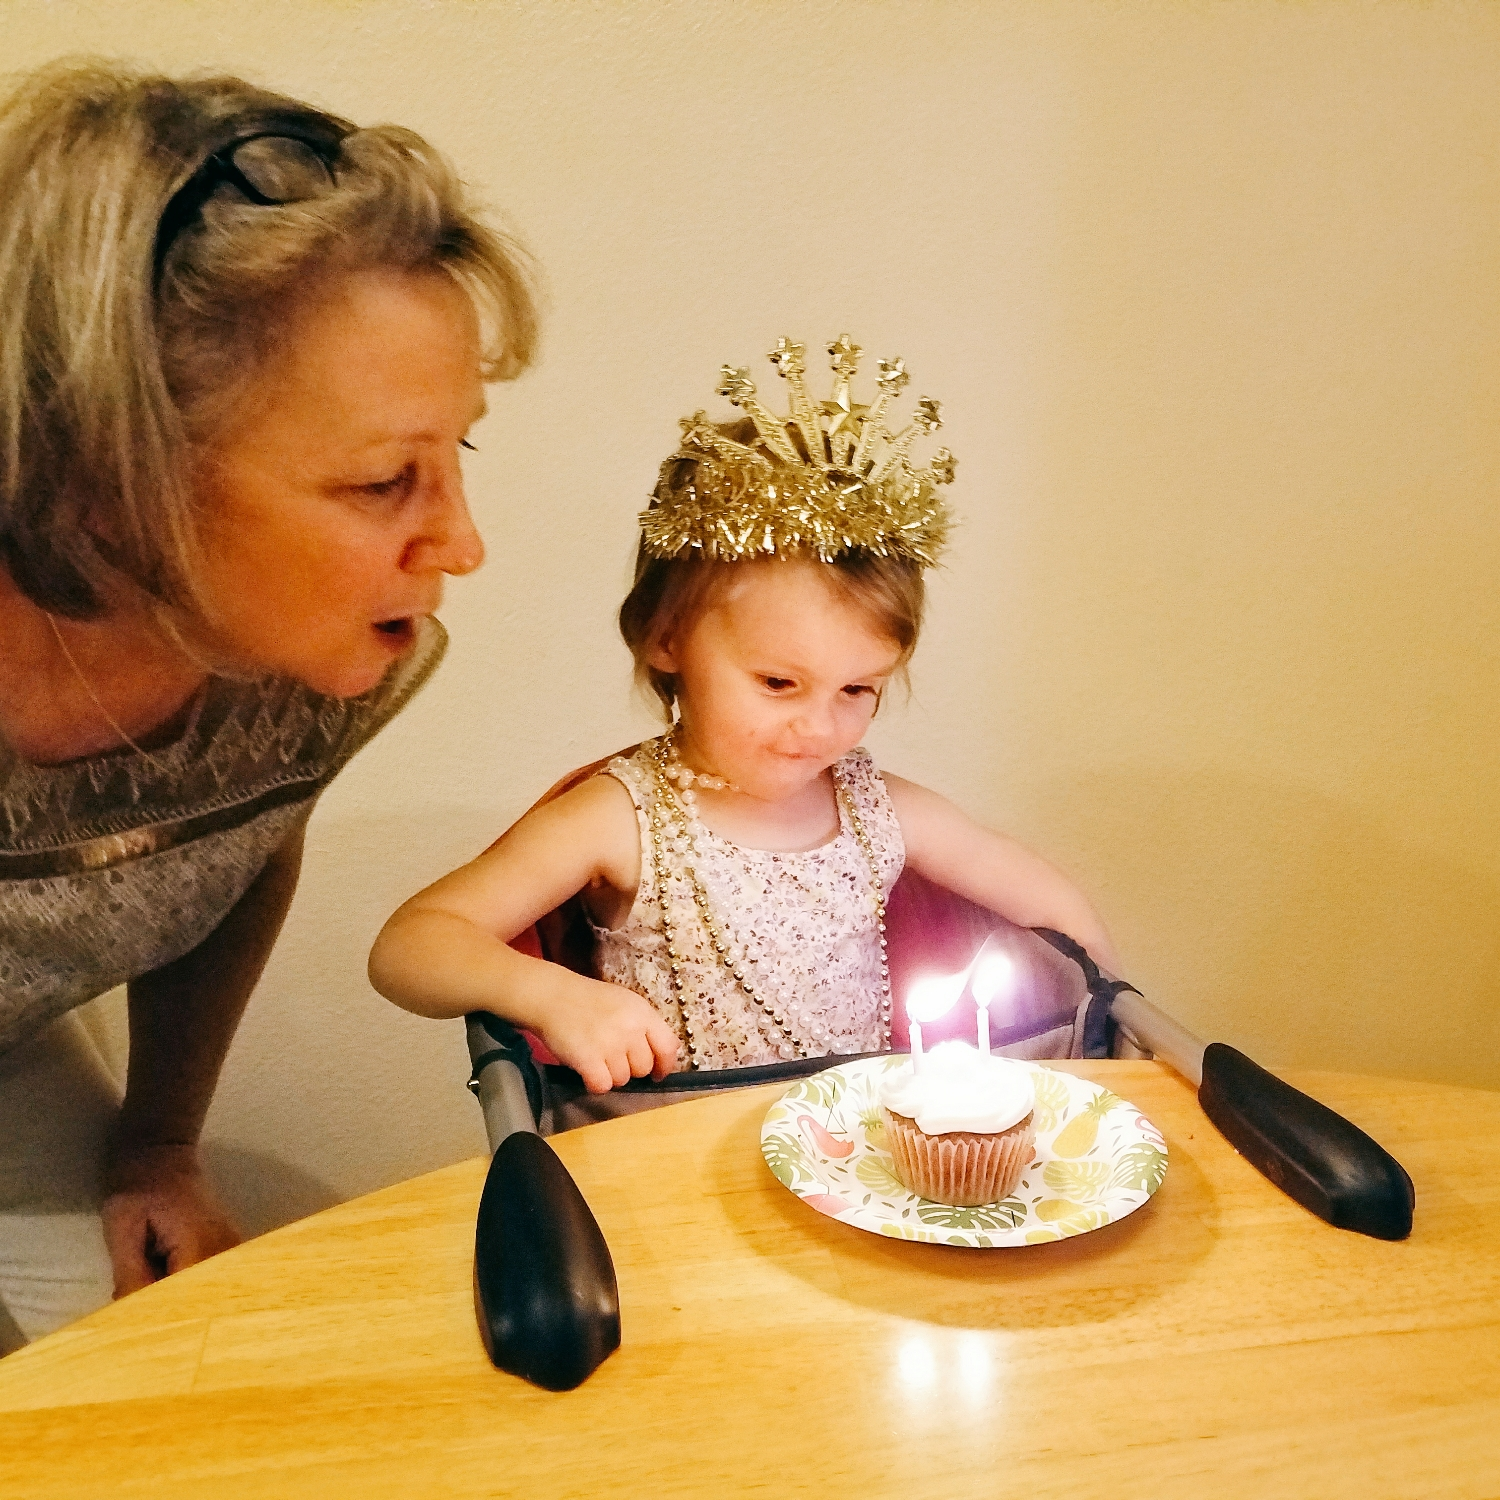 Happy birthday! She needed a little help from Gramma to blow out those candles